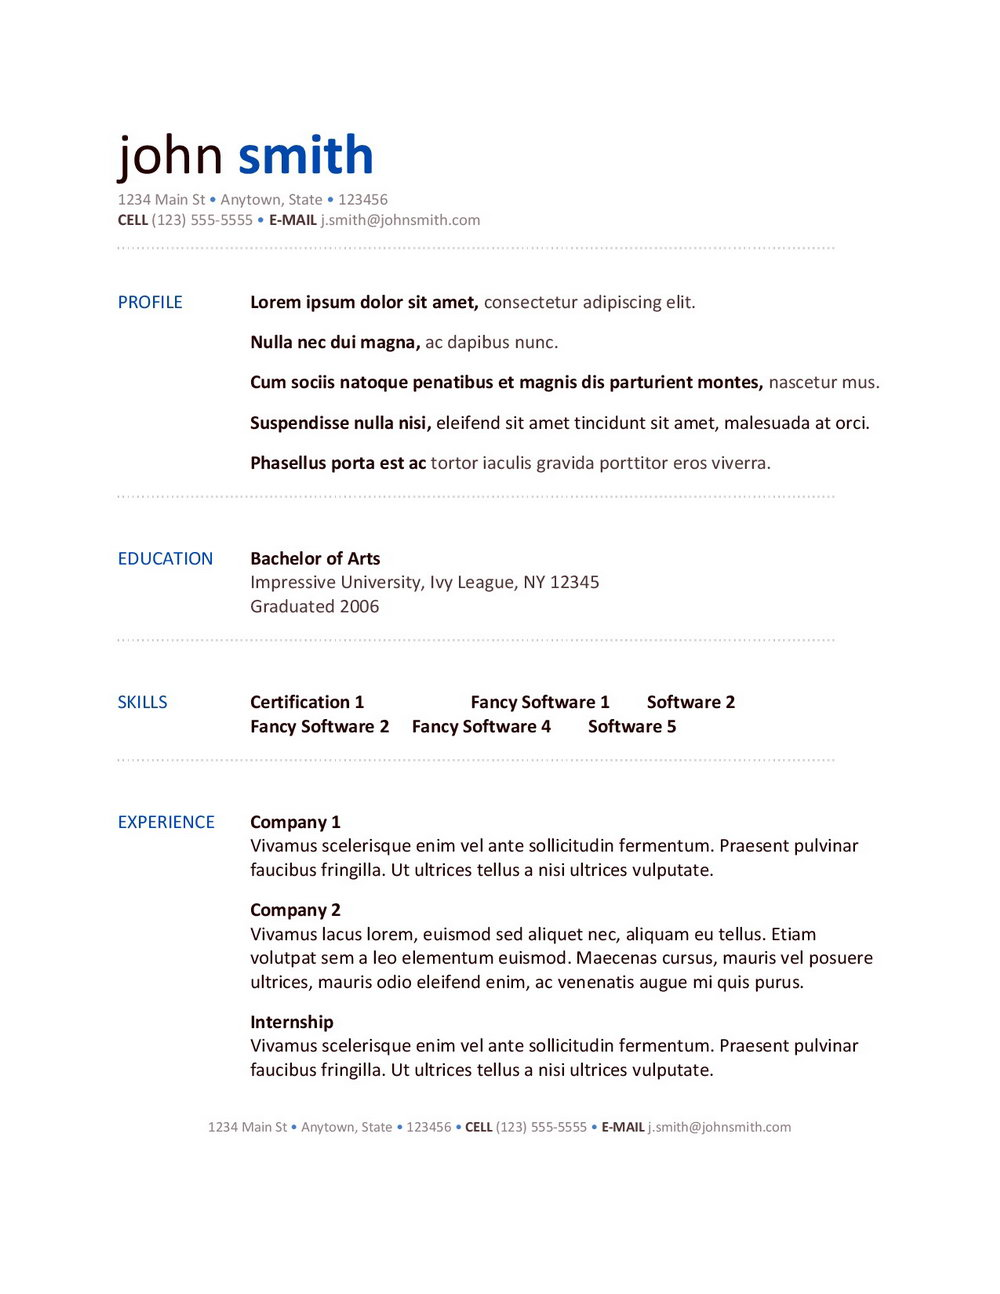 Google Docs Free Resume Templates